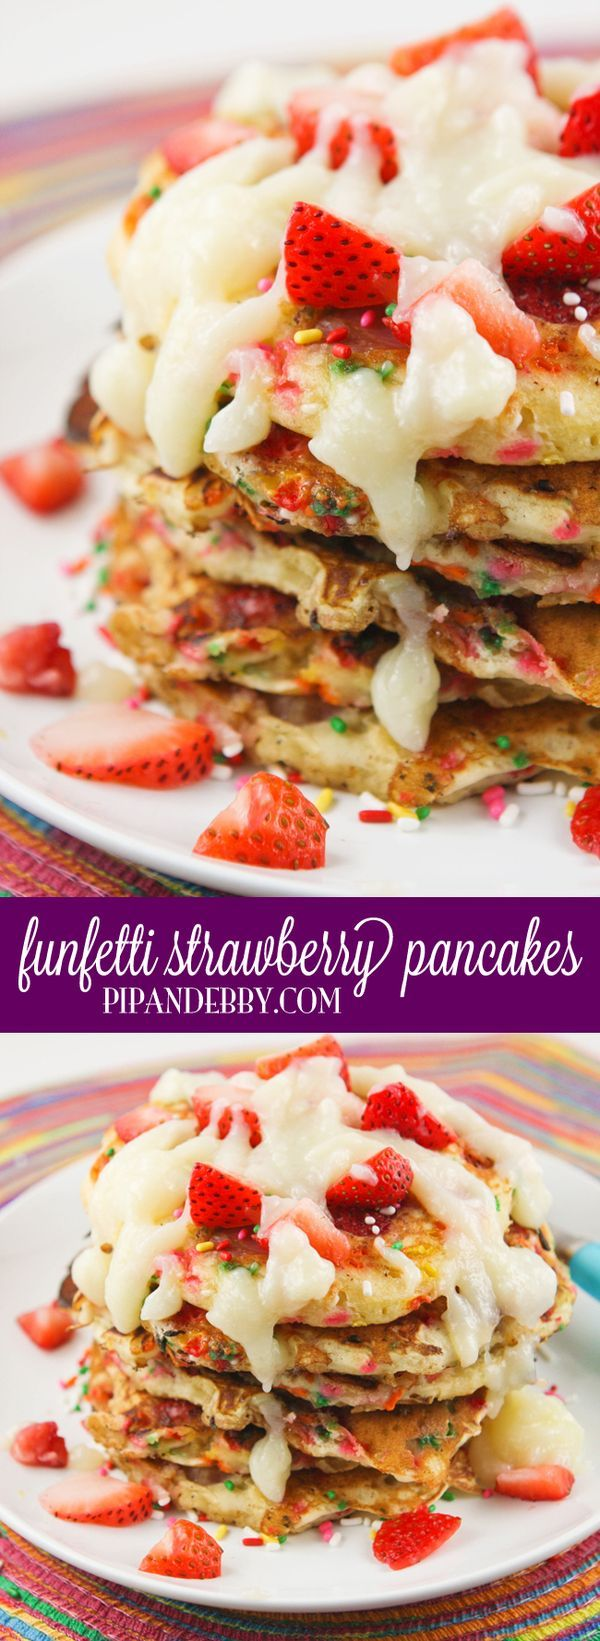 Funfetti Strawberry Pancakes | Alternate title: Happy Pancakes! They are fun, colorful and tasty! Kids LOVE 'em!